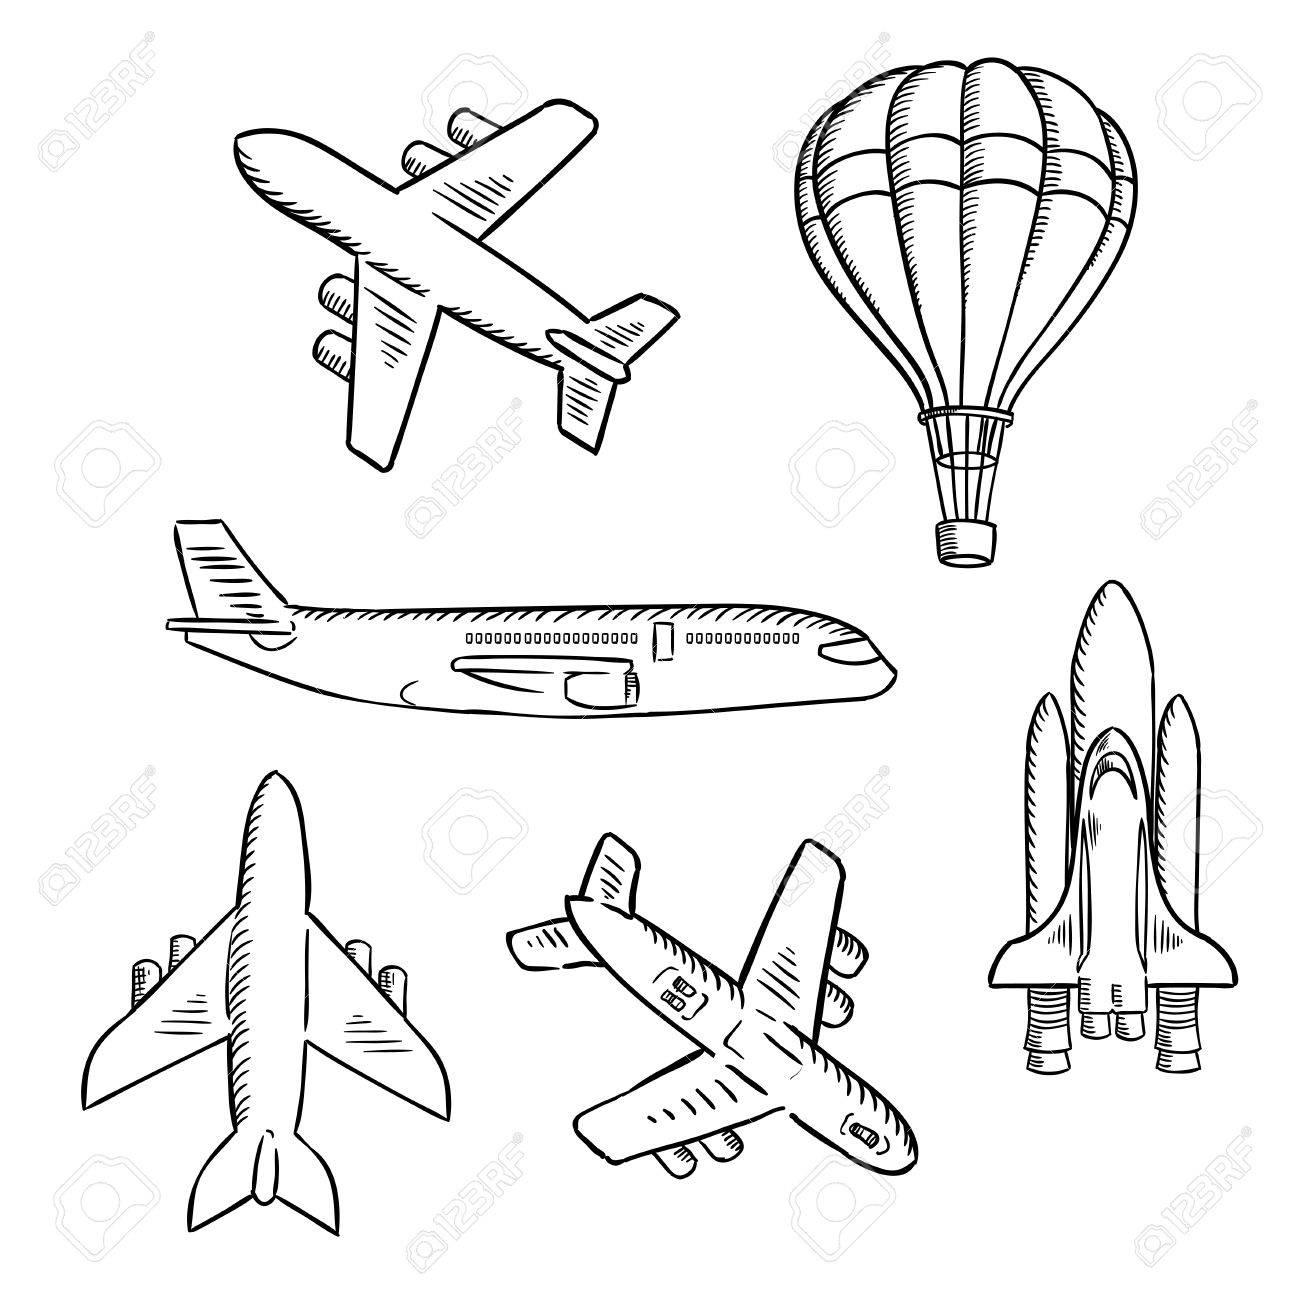 1300x1300 Air Transport Sketches With Jet Airplane, Cargo Planes, Vintage